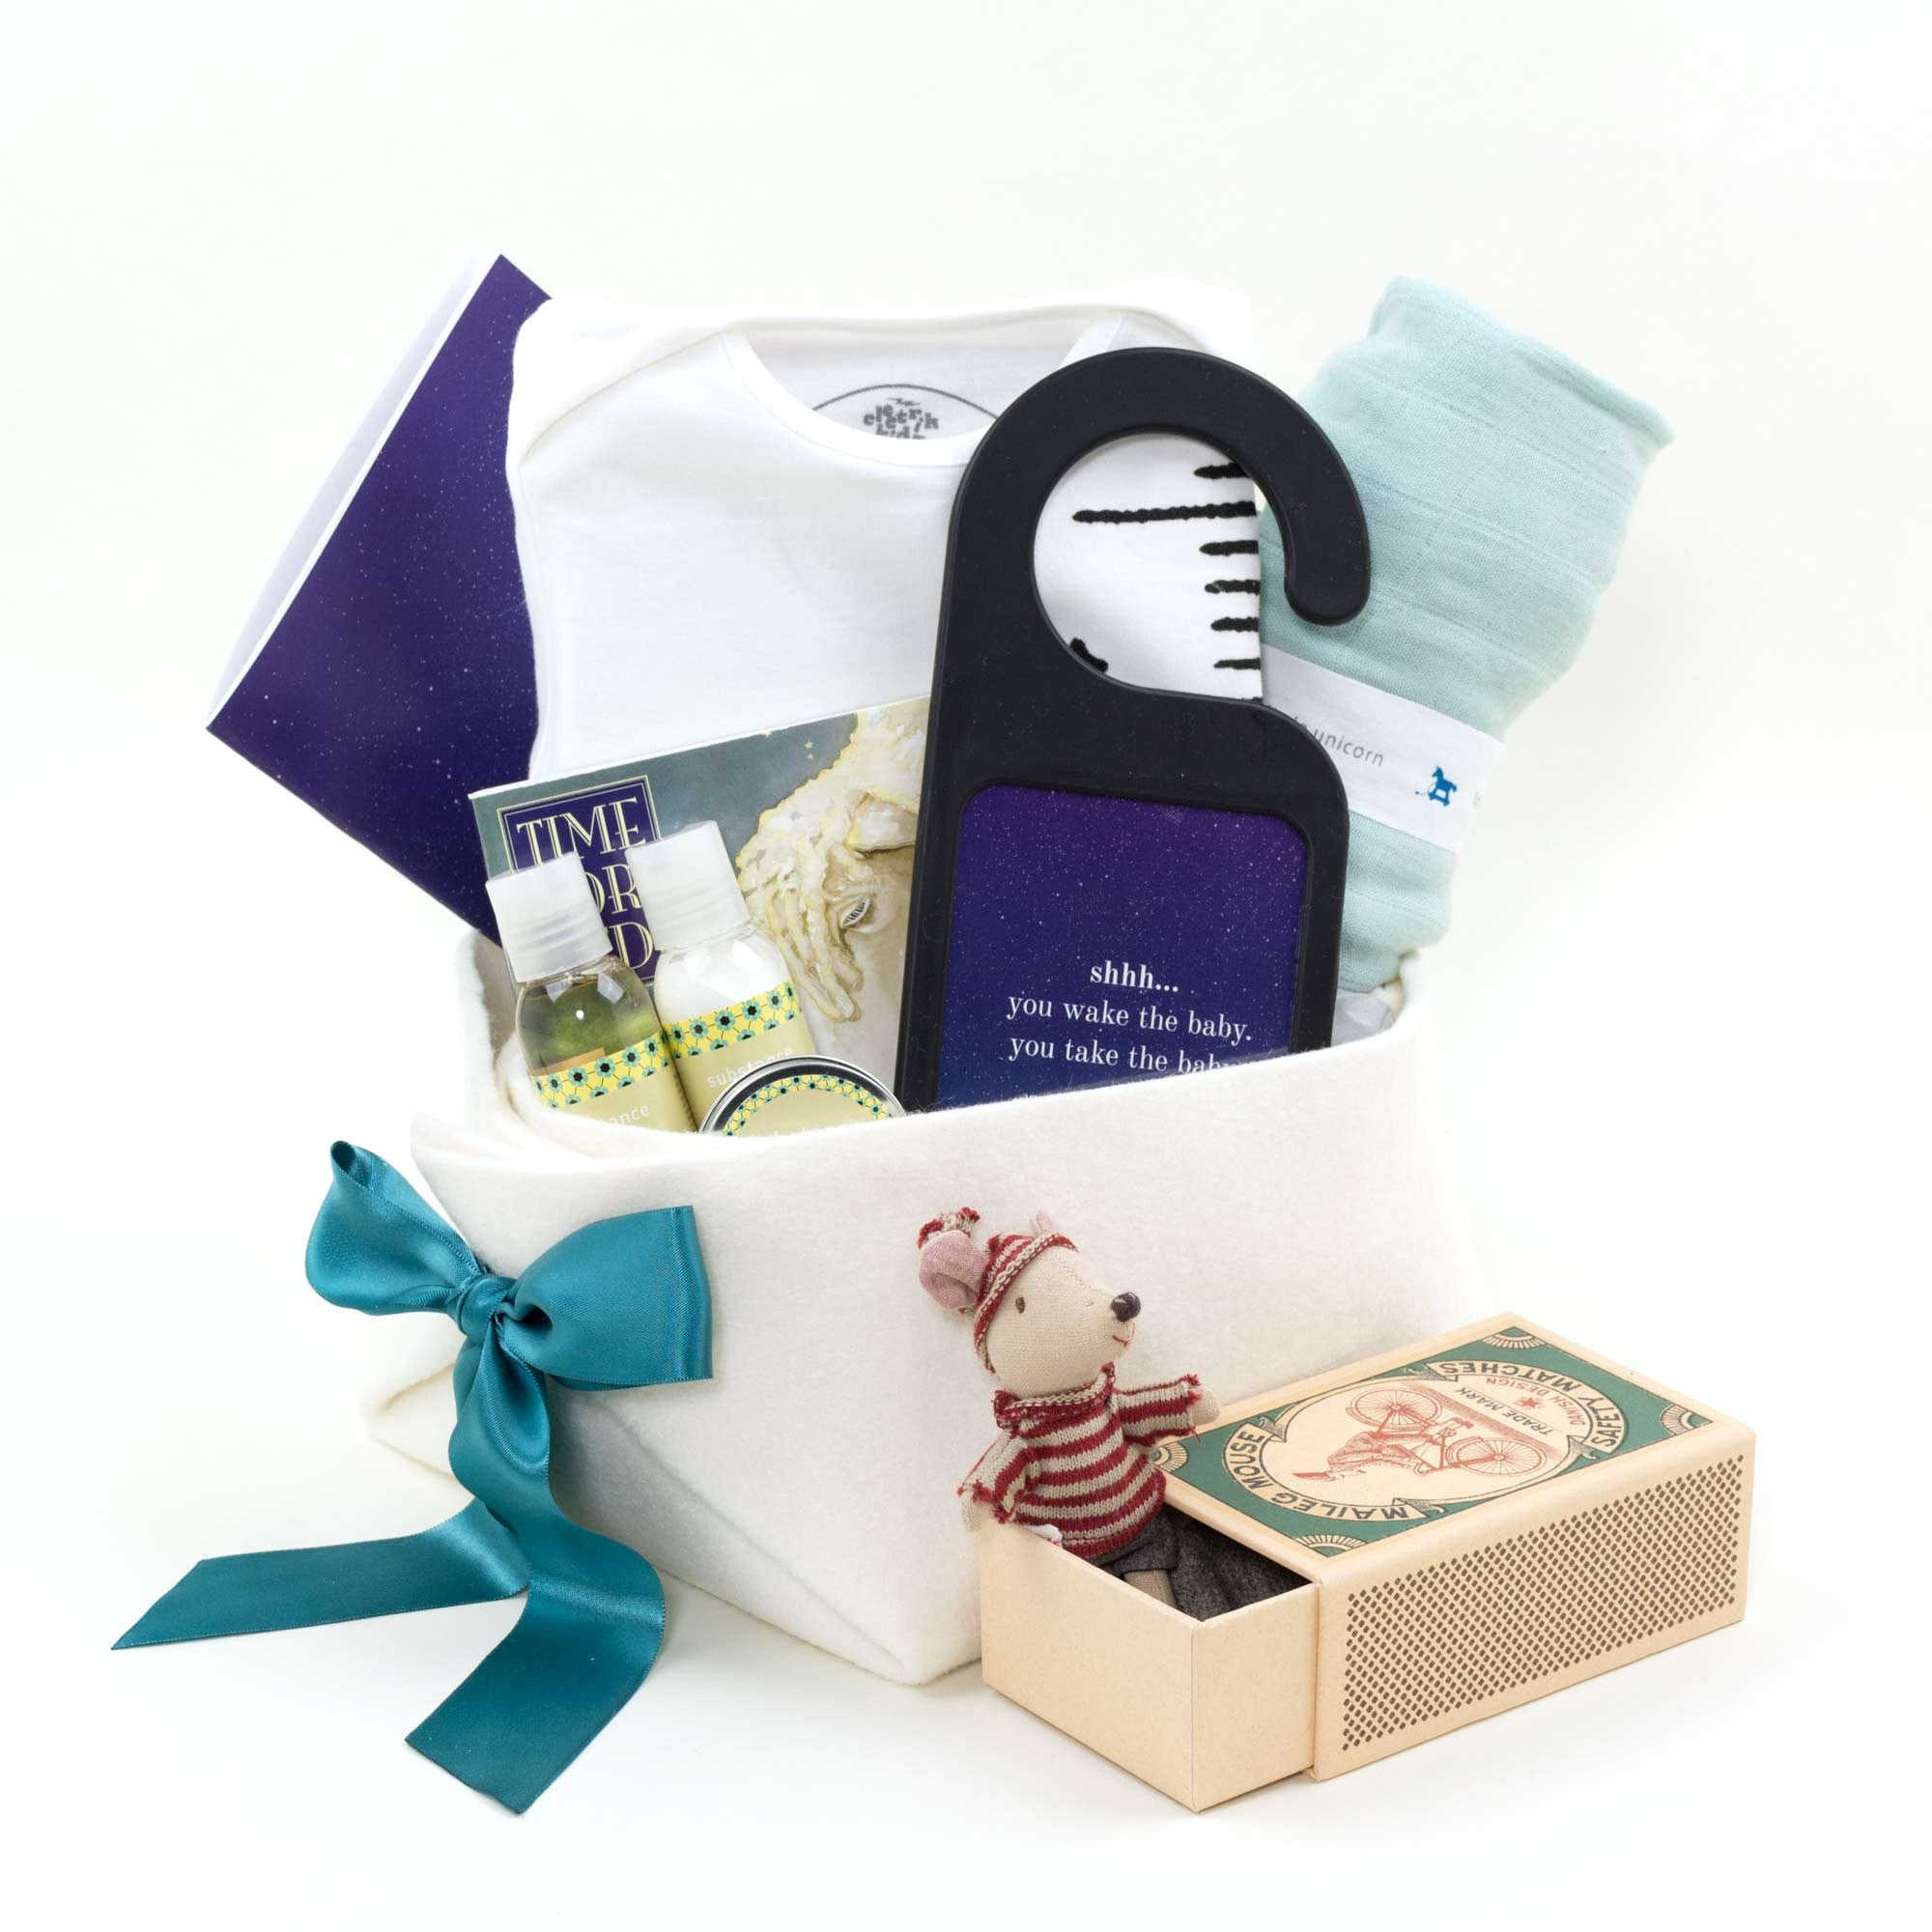 Welcome Home Baby Gift Basket in Neutral